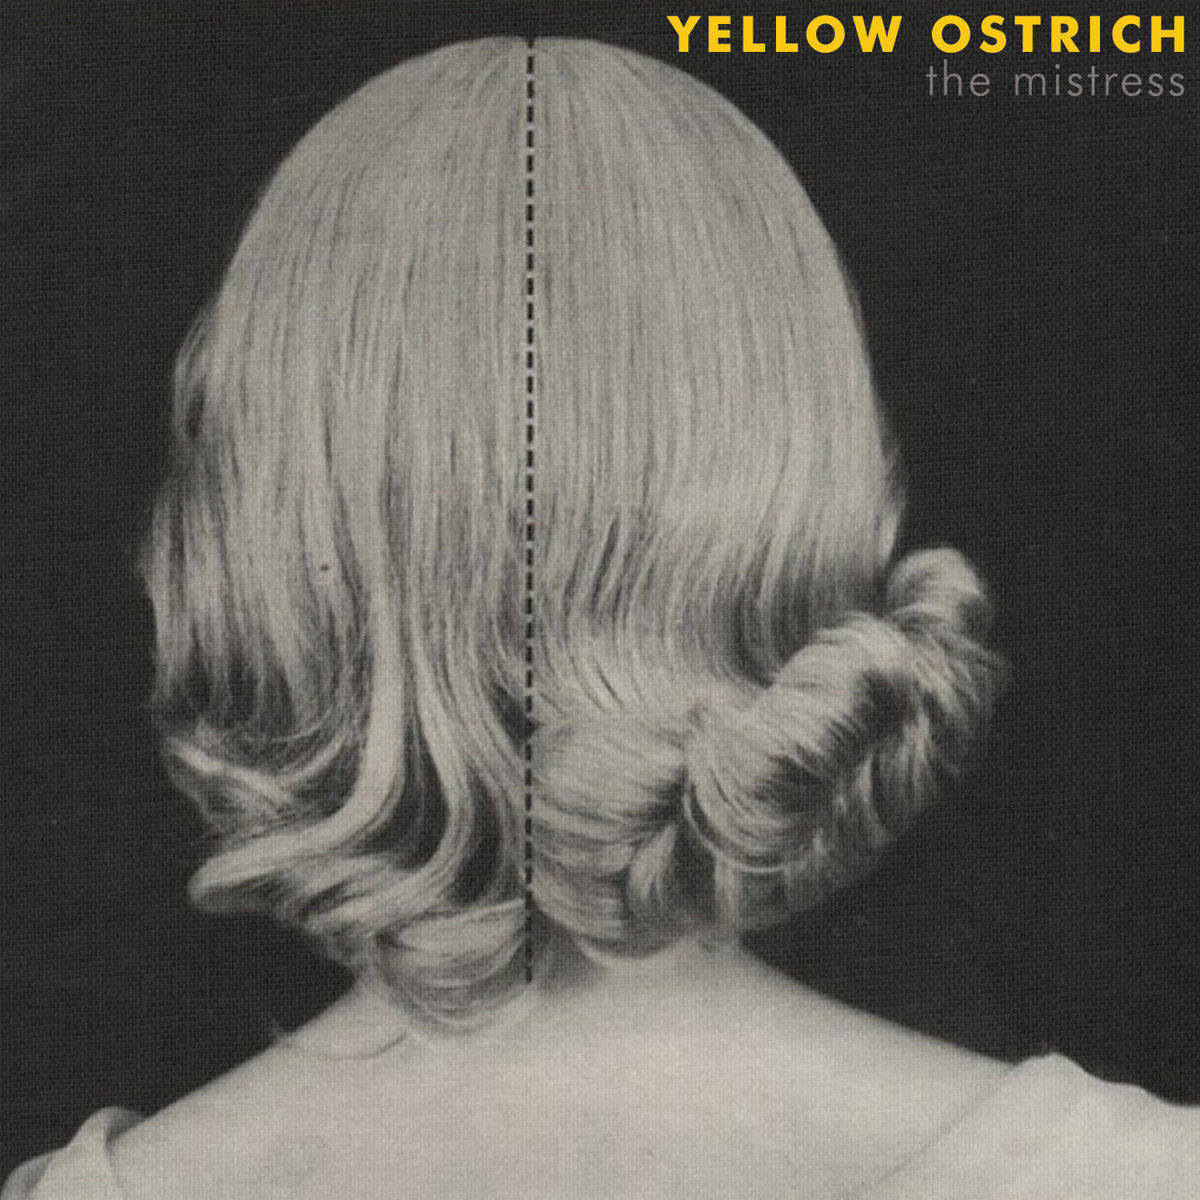 Yellow Ostrich - The Mistress (2010 LP)